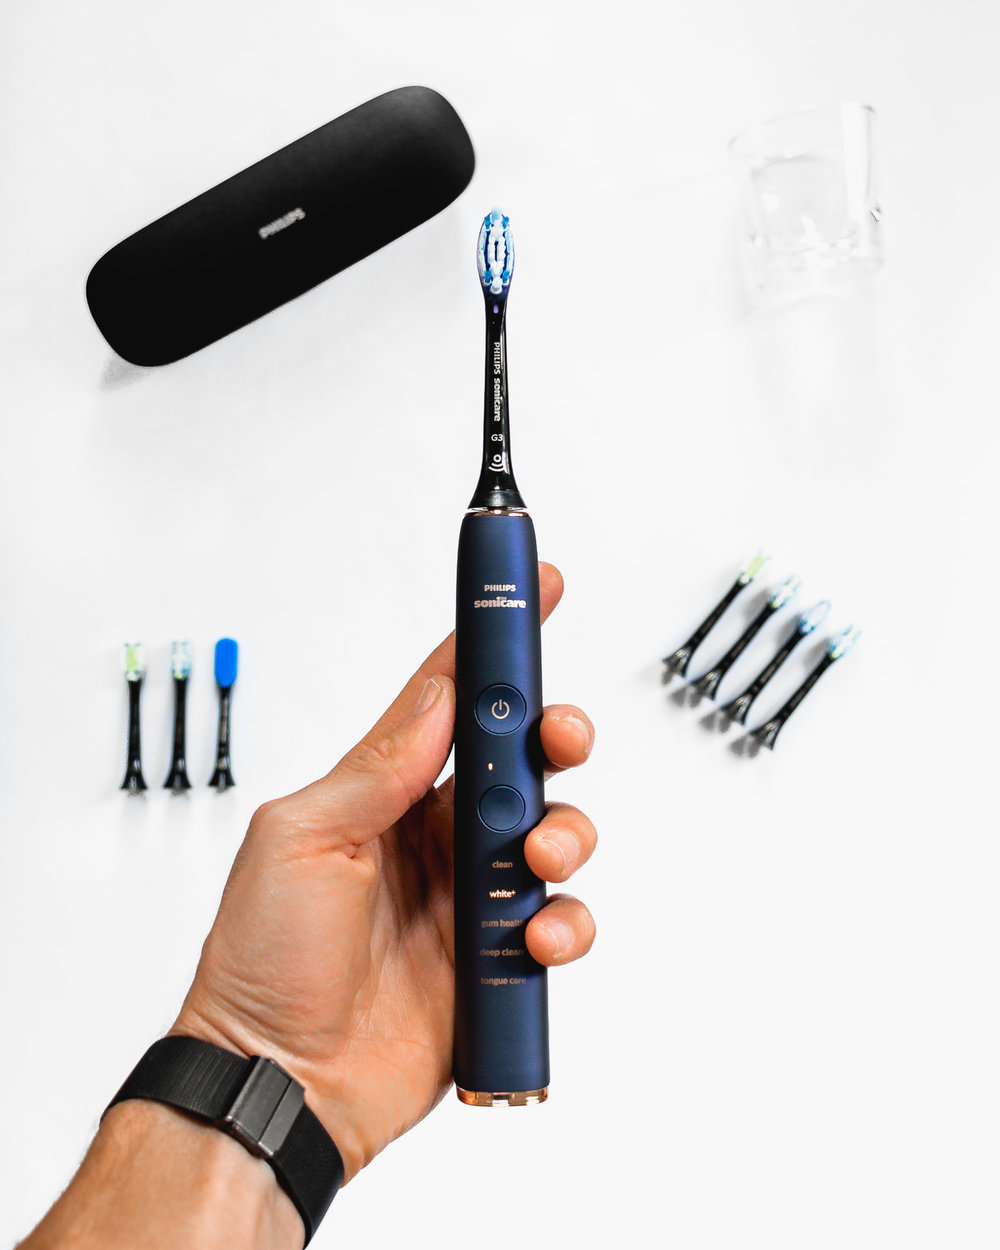 Philips Sonicare DiamondClean Smart toothbrush 9700